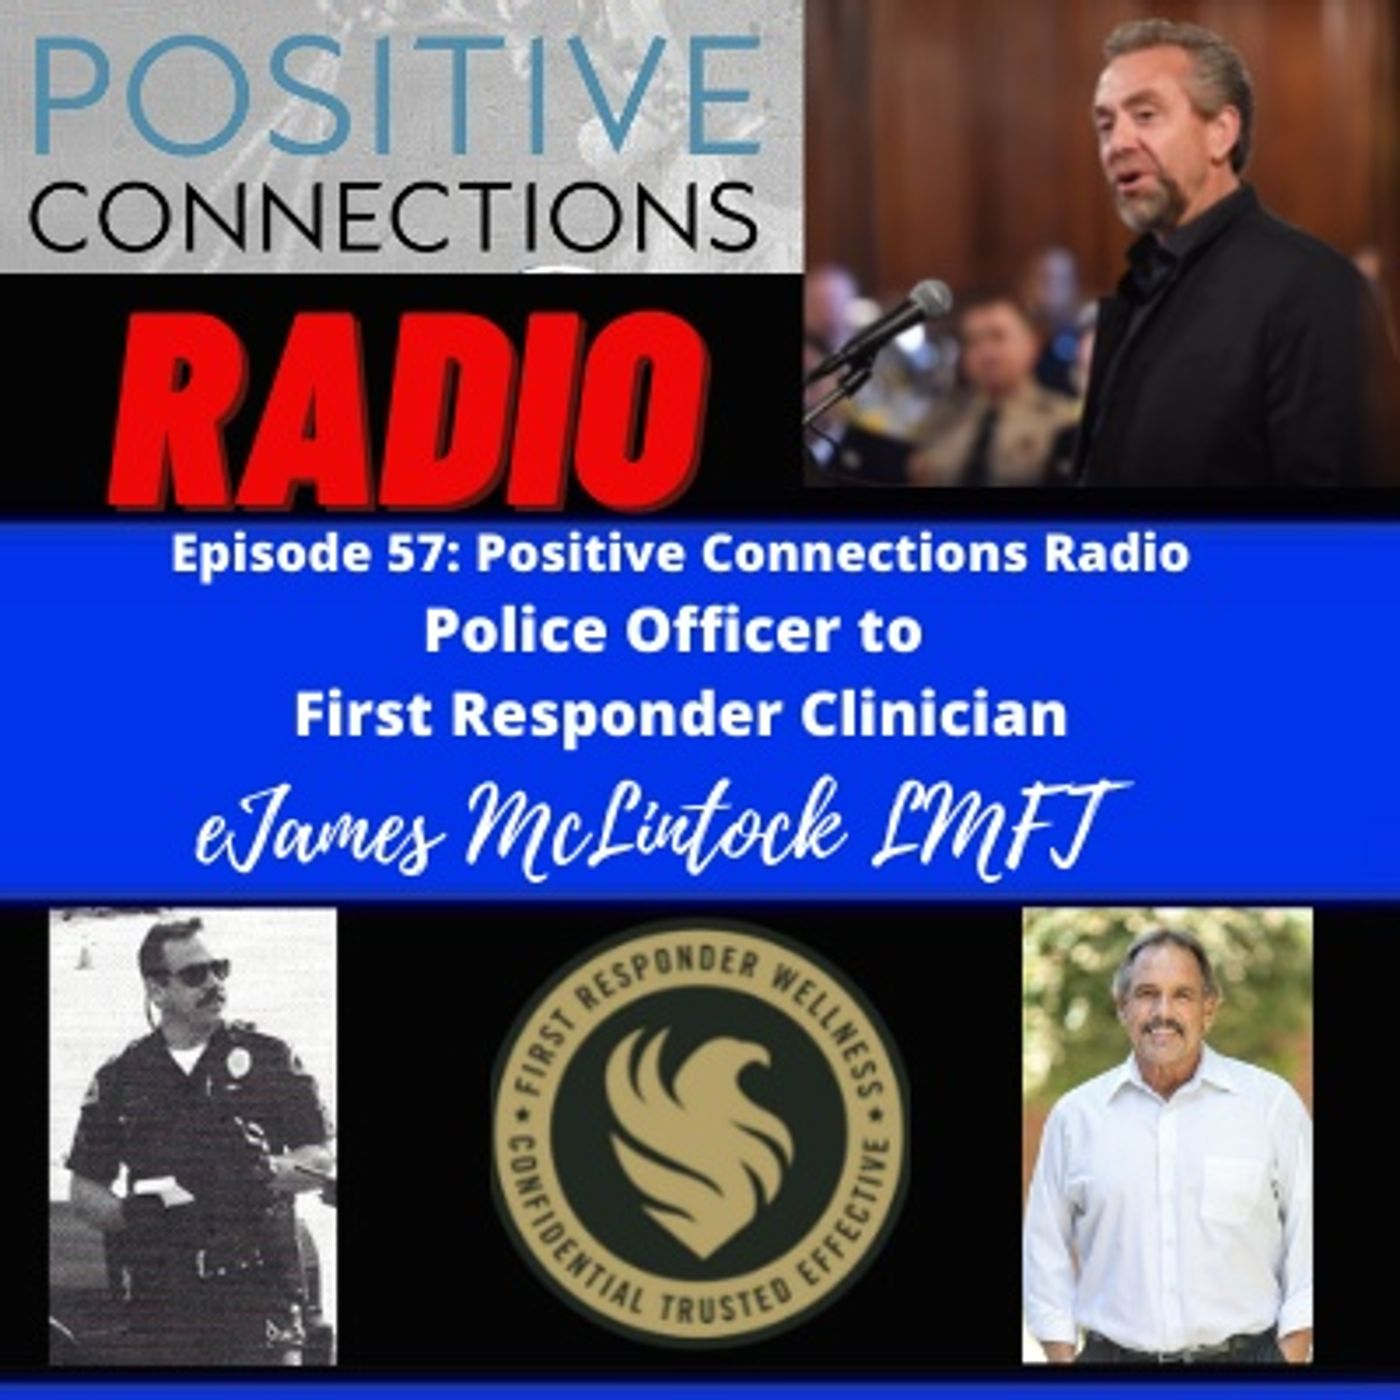 Police Officer To First Responder Clinician: James McLintock